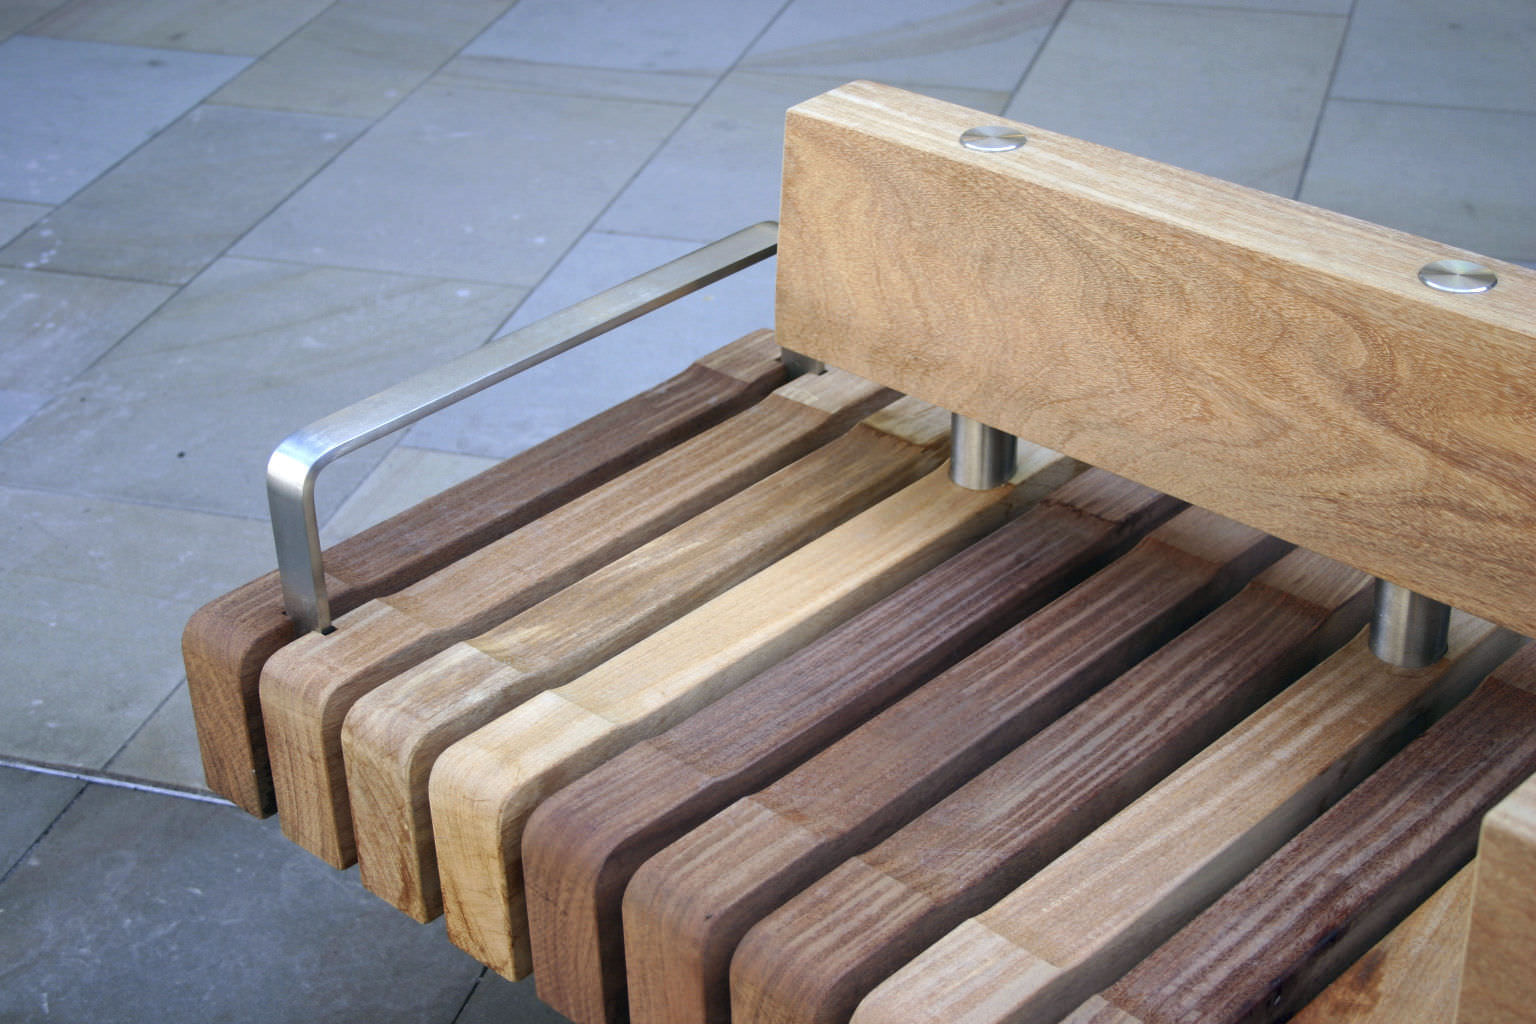 ... Public Bench / Contemporary / Wooden / Stainless Steel CANAL WALK,  SWINDON Factory Street Furniture ...